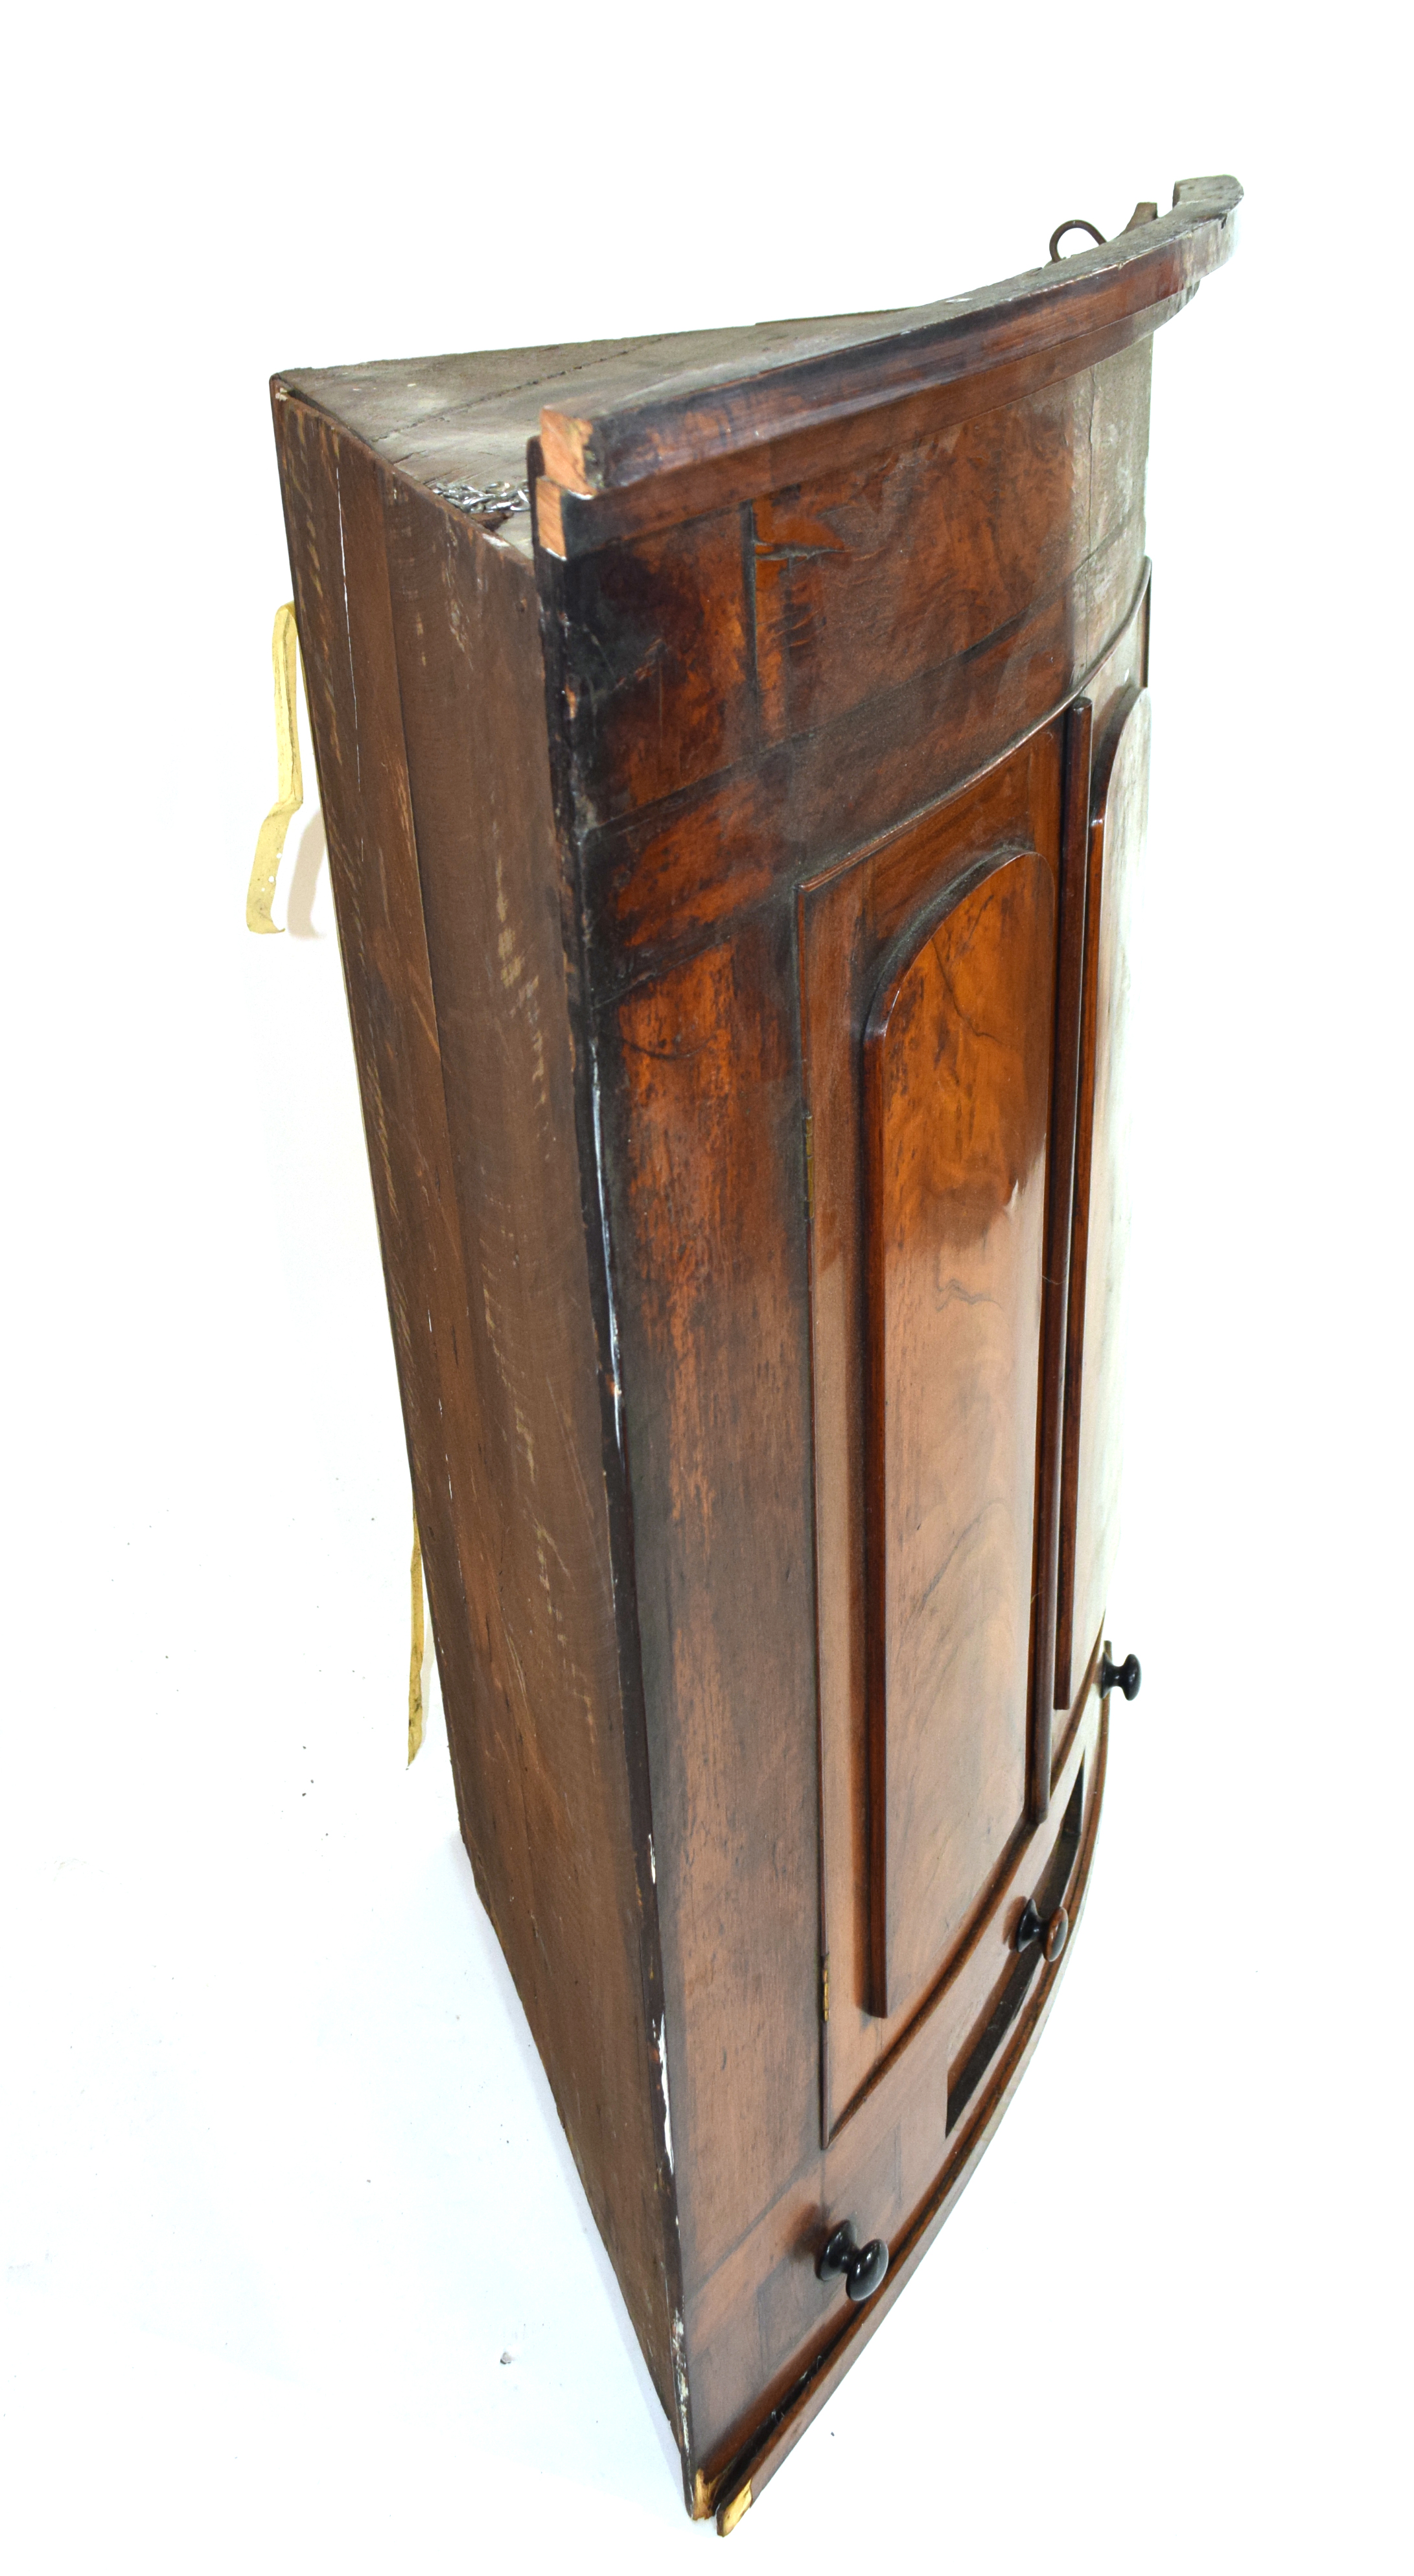 19th century mahogany corner cabinet of large proportions, the bow front body with two panelled - Image 3 of 4